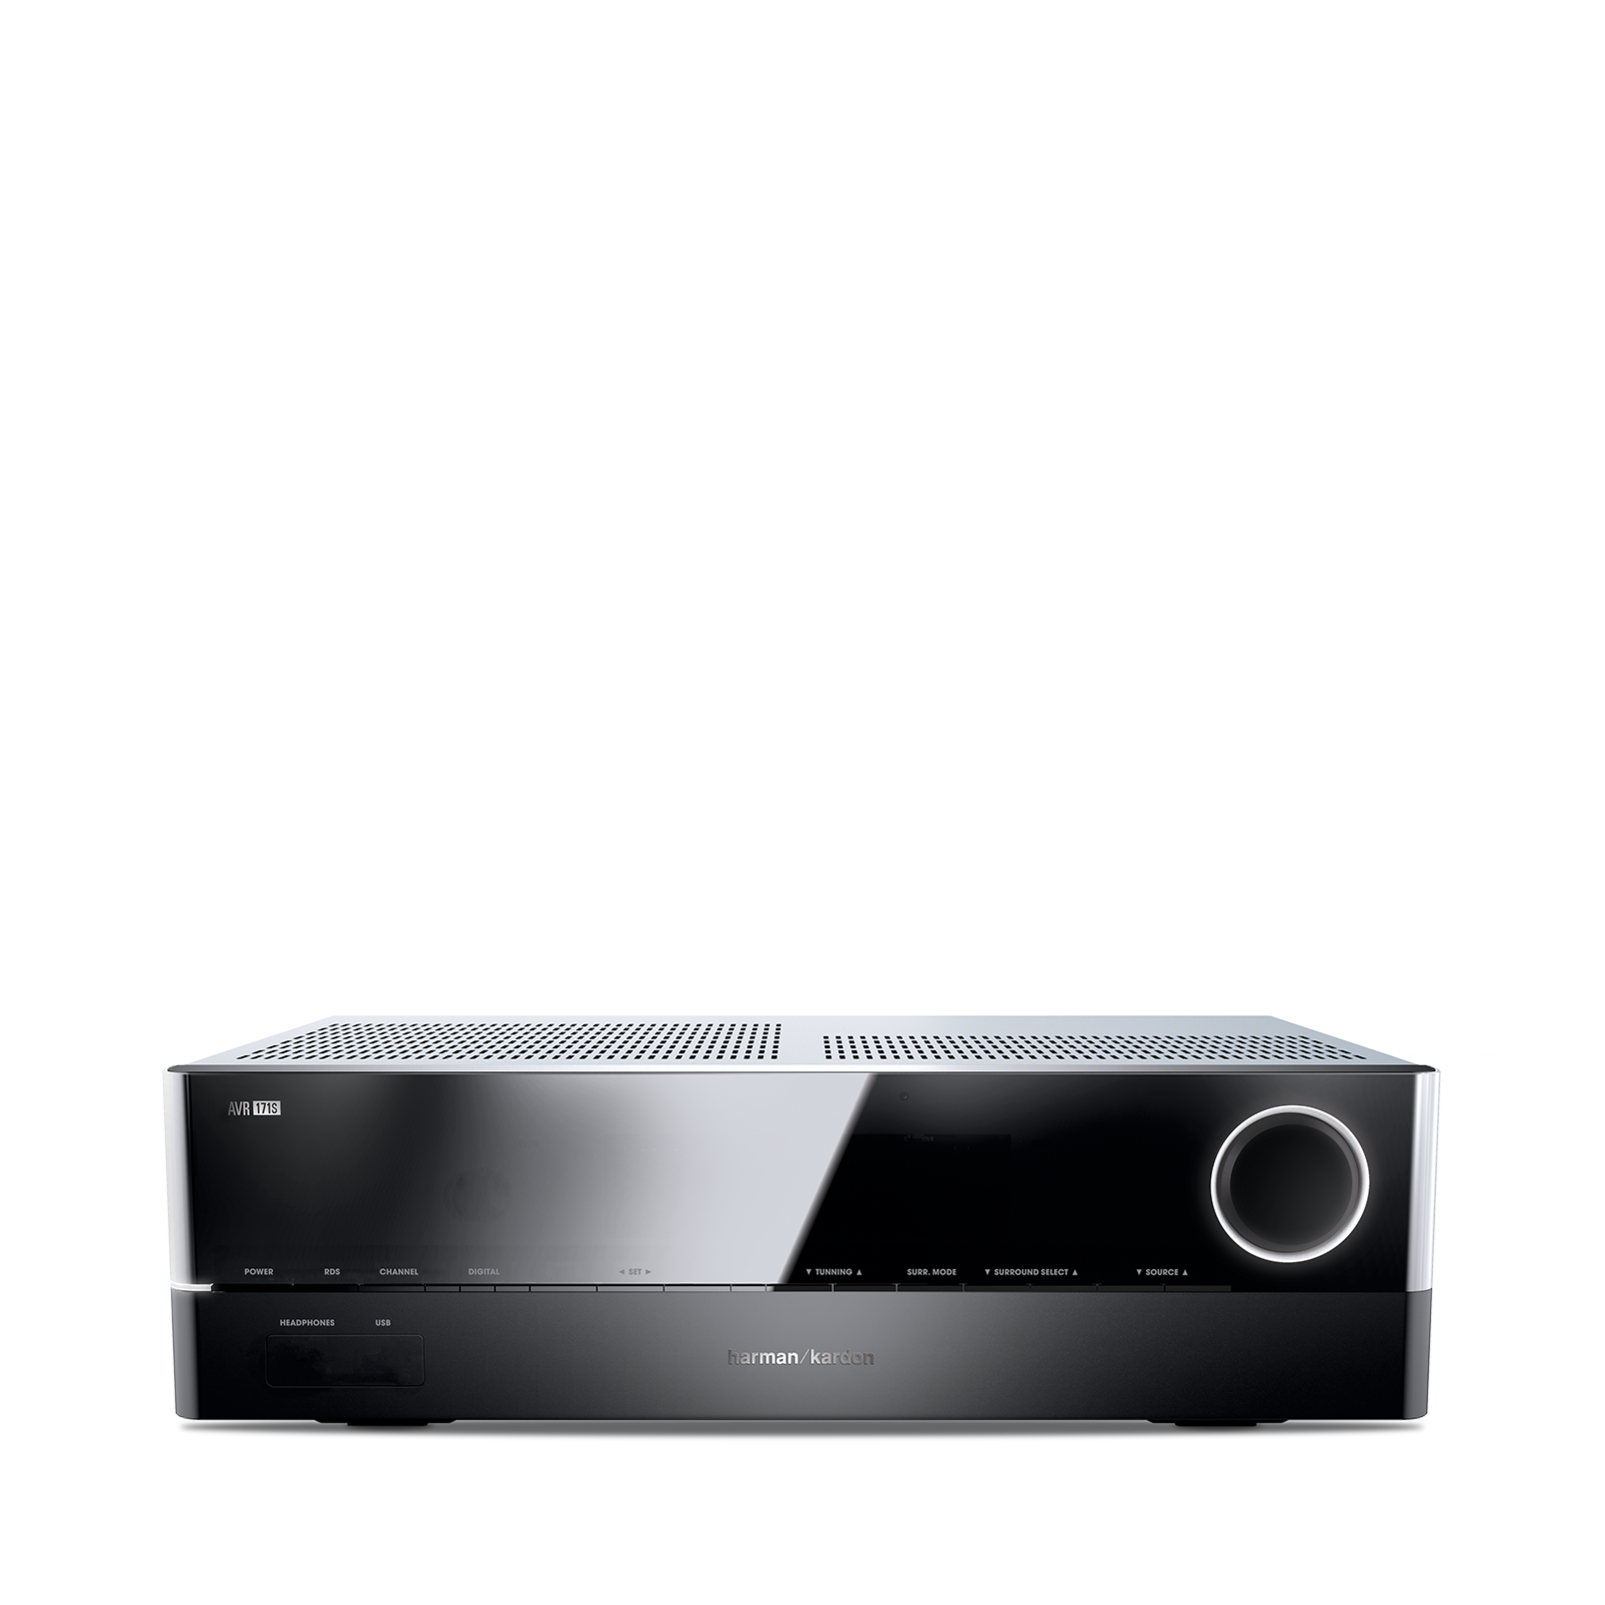 Avr 171s 700 Watt 72 Channel Networked With Airplay And Av Receivers Datasheet For Home Theater Product Solution